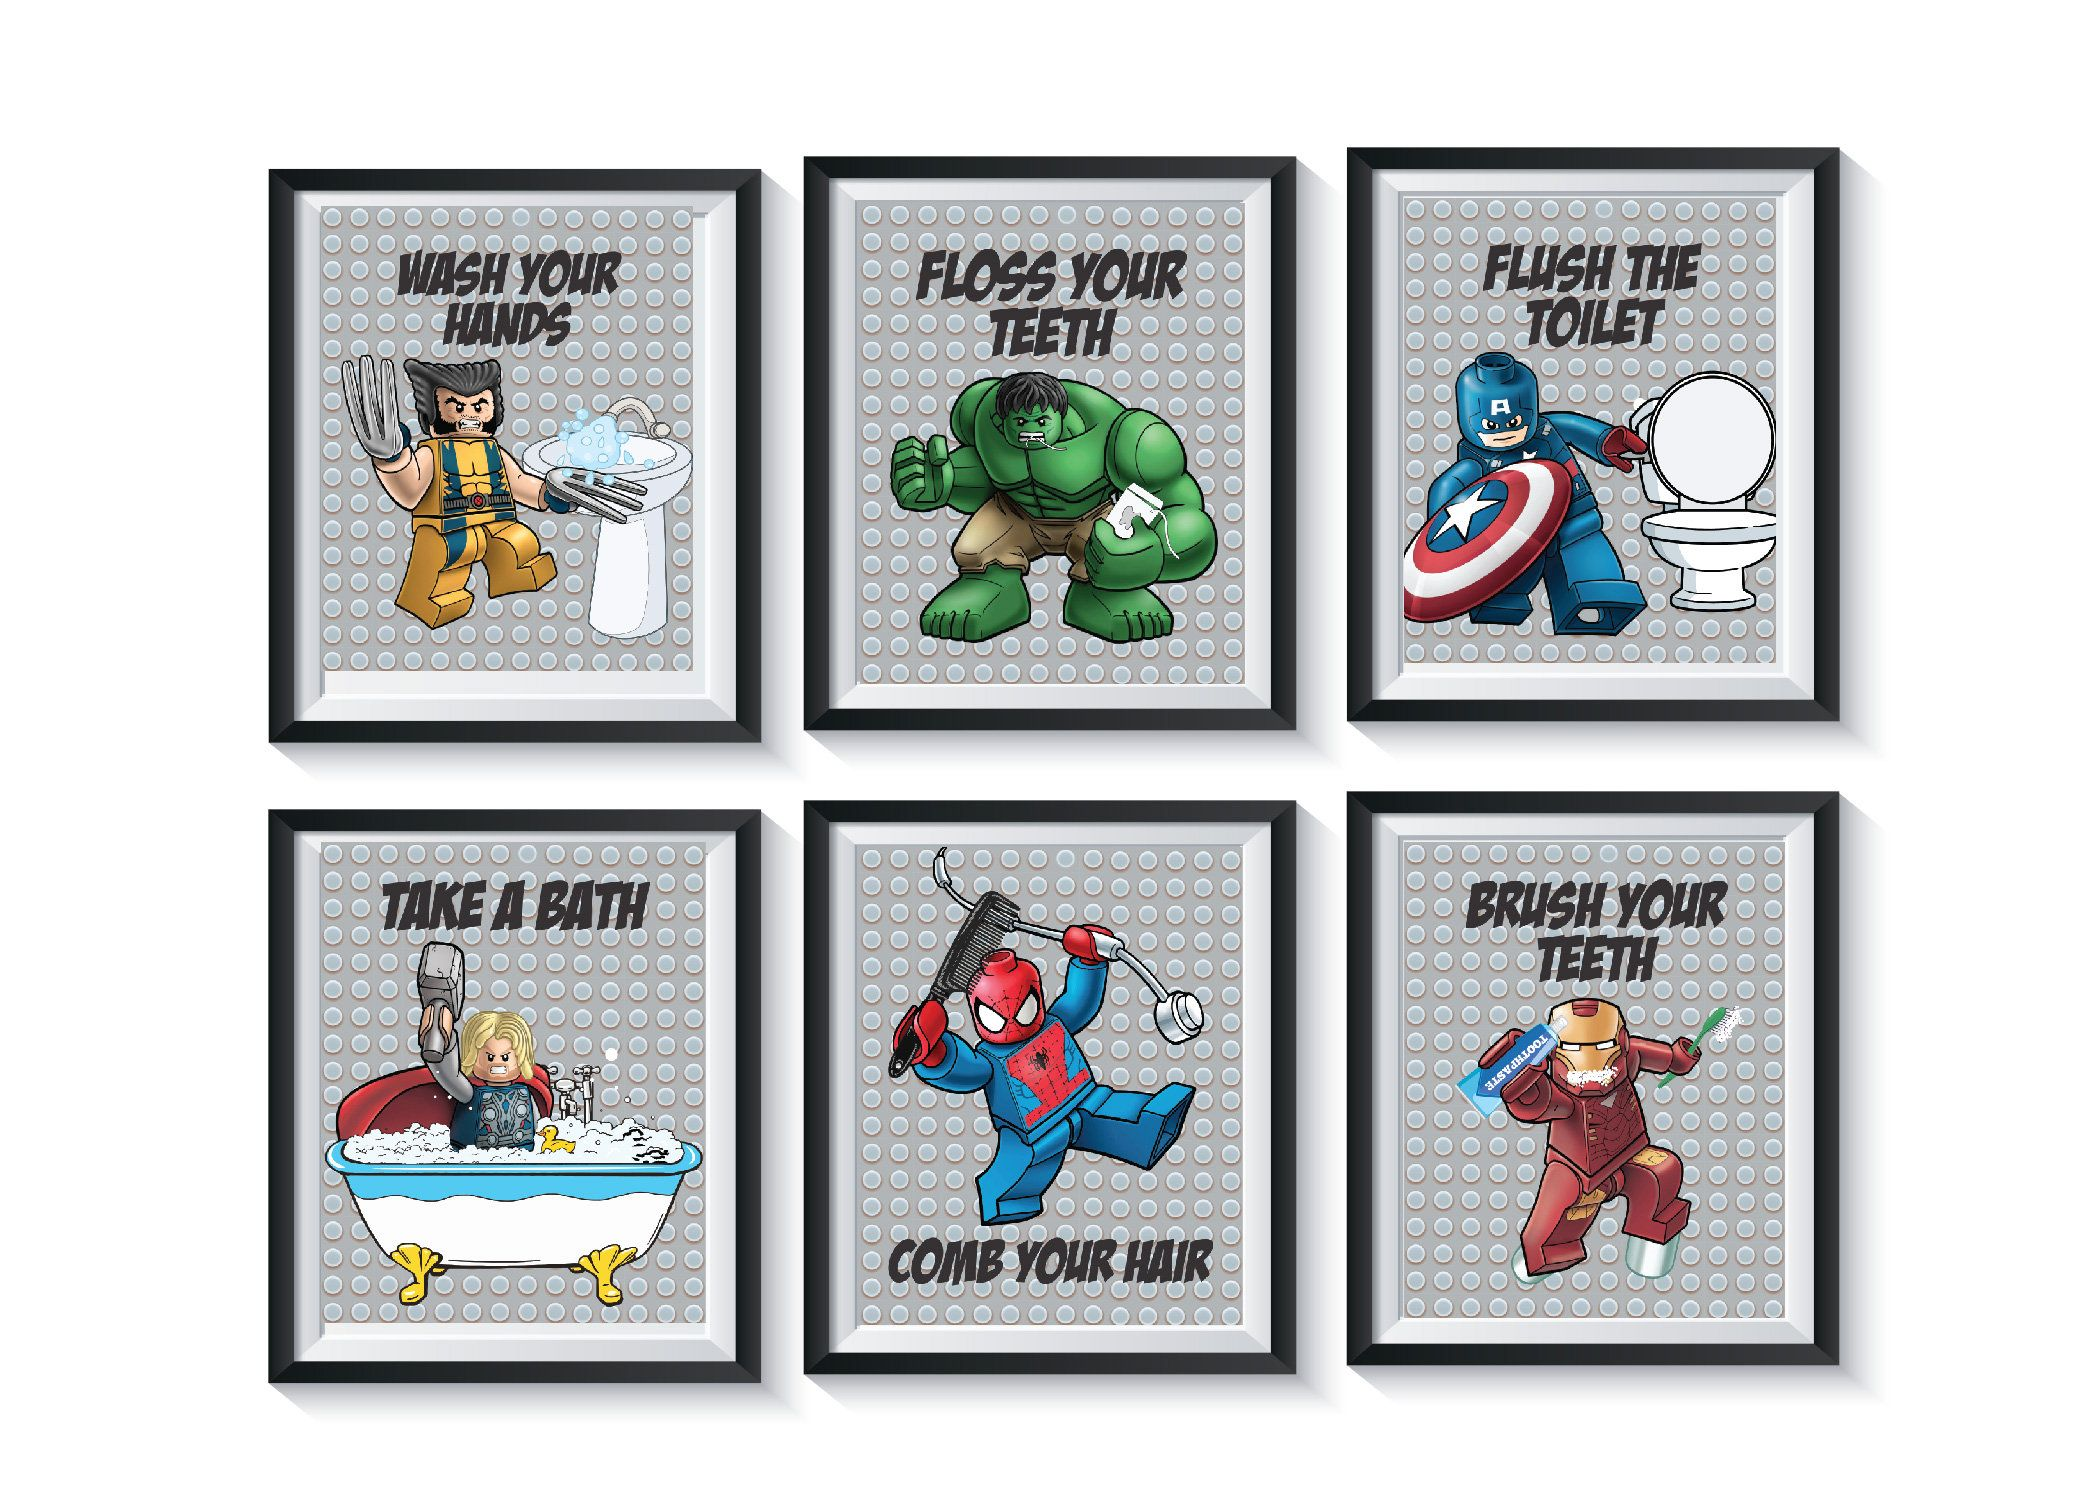 Superhero Bathroom Art Prints Qty 6 Wall Decor Boy Avengers Etsy In 2021 Bathroom Art Prints Superhero Bathroom Prints